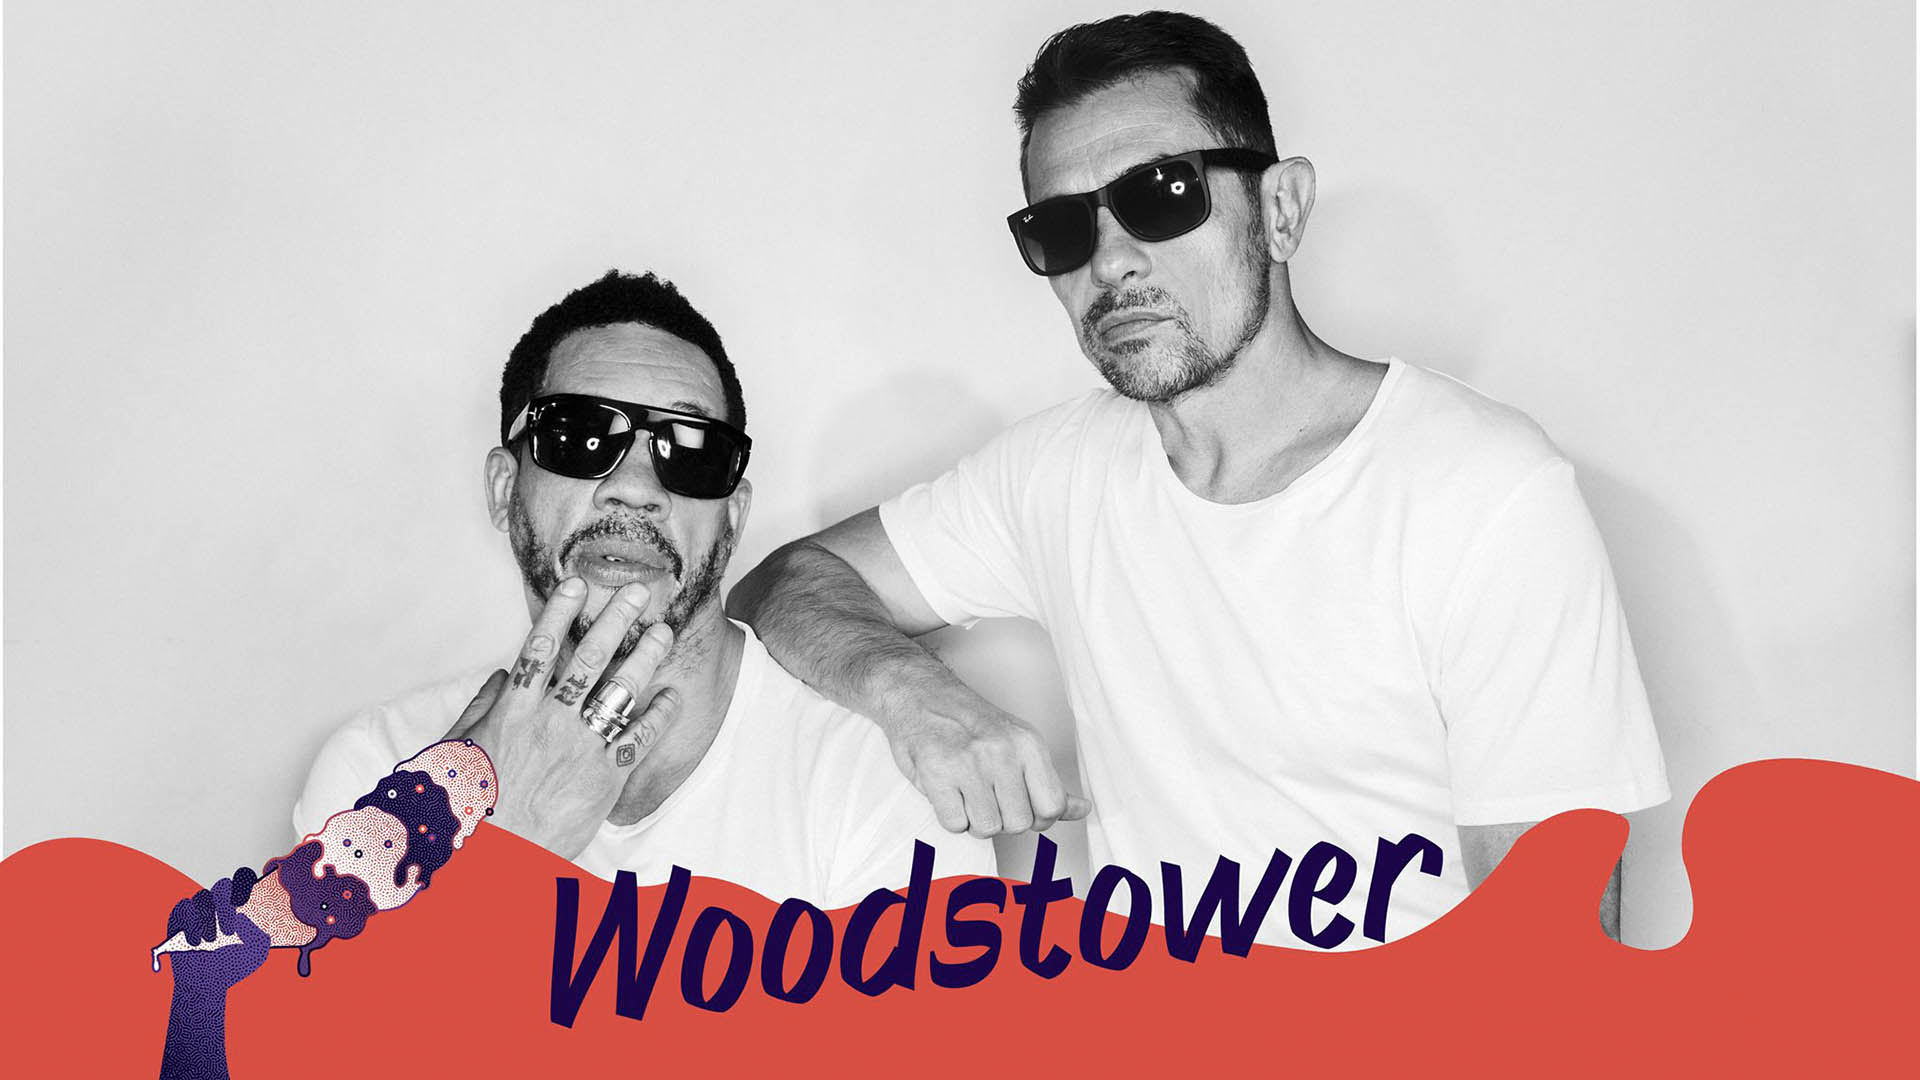 Woodstower-30-aout-2018